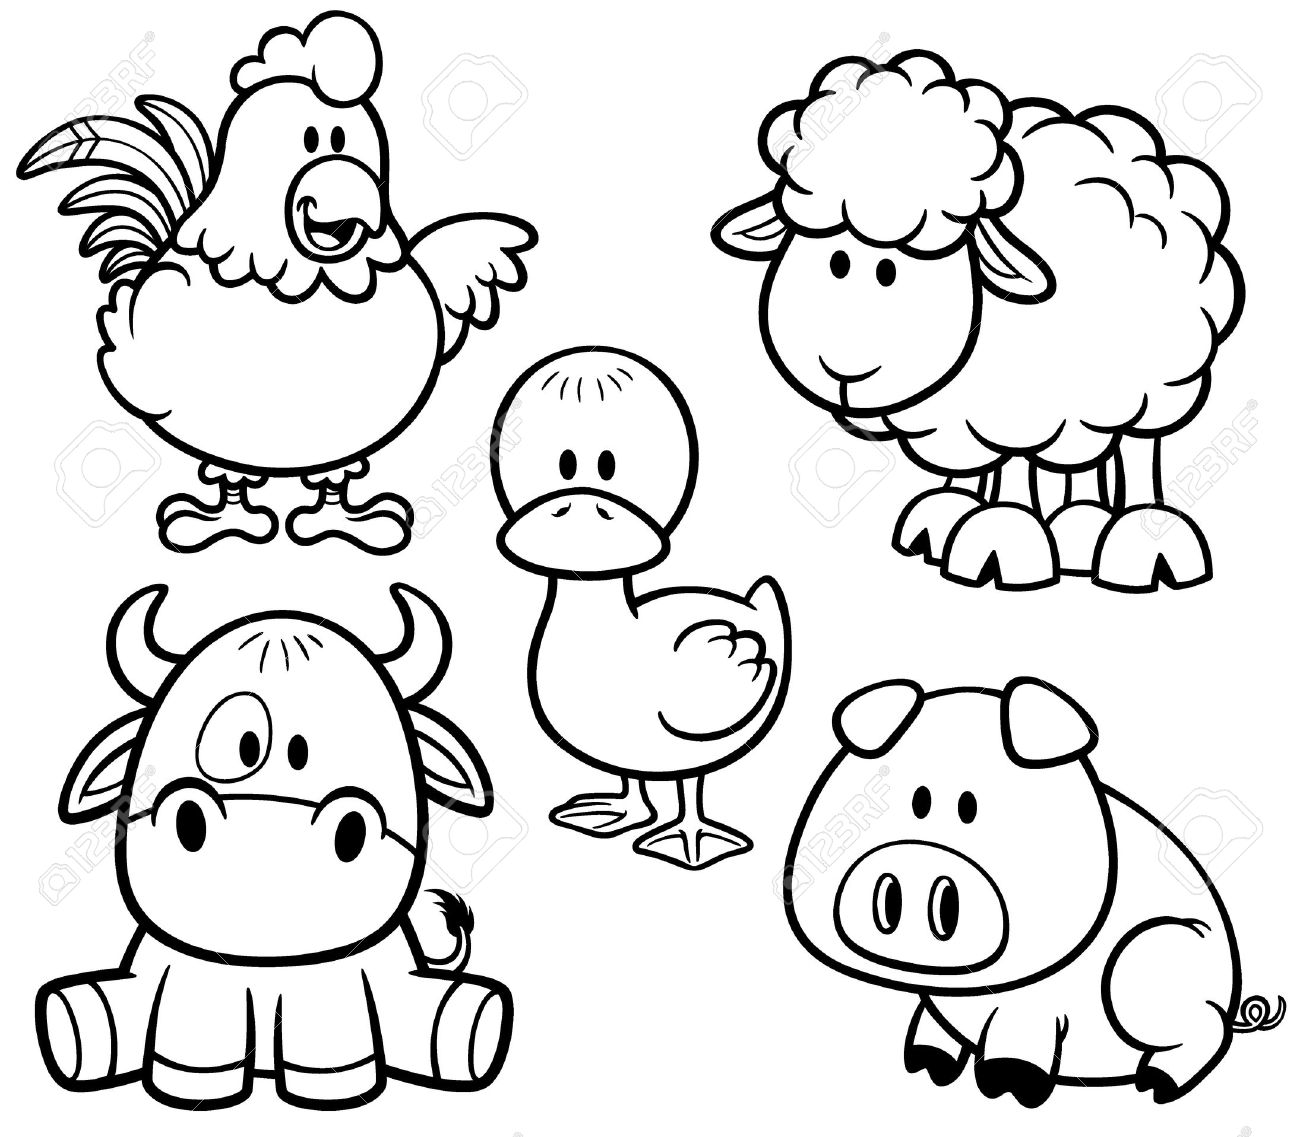 cute coloring pages of animals cute animal coloring pages best coloring pages for kids cute of pages animals coloring